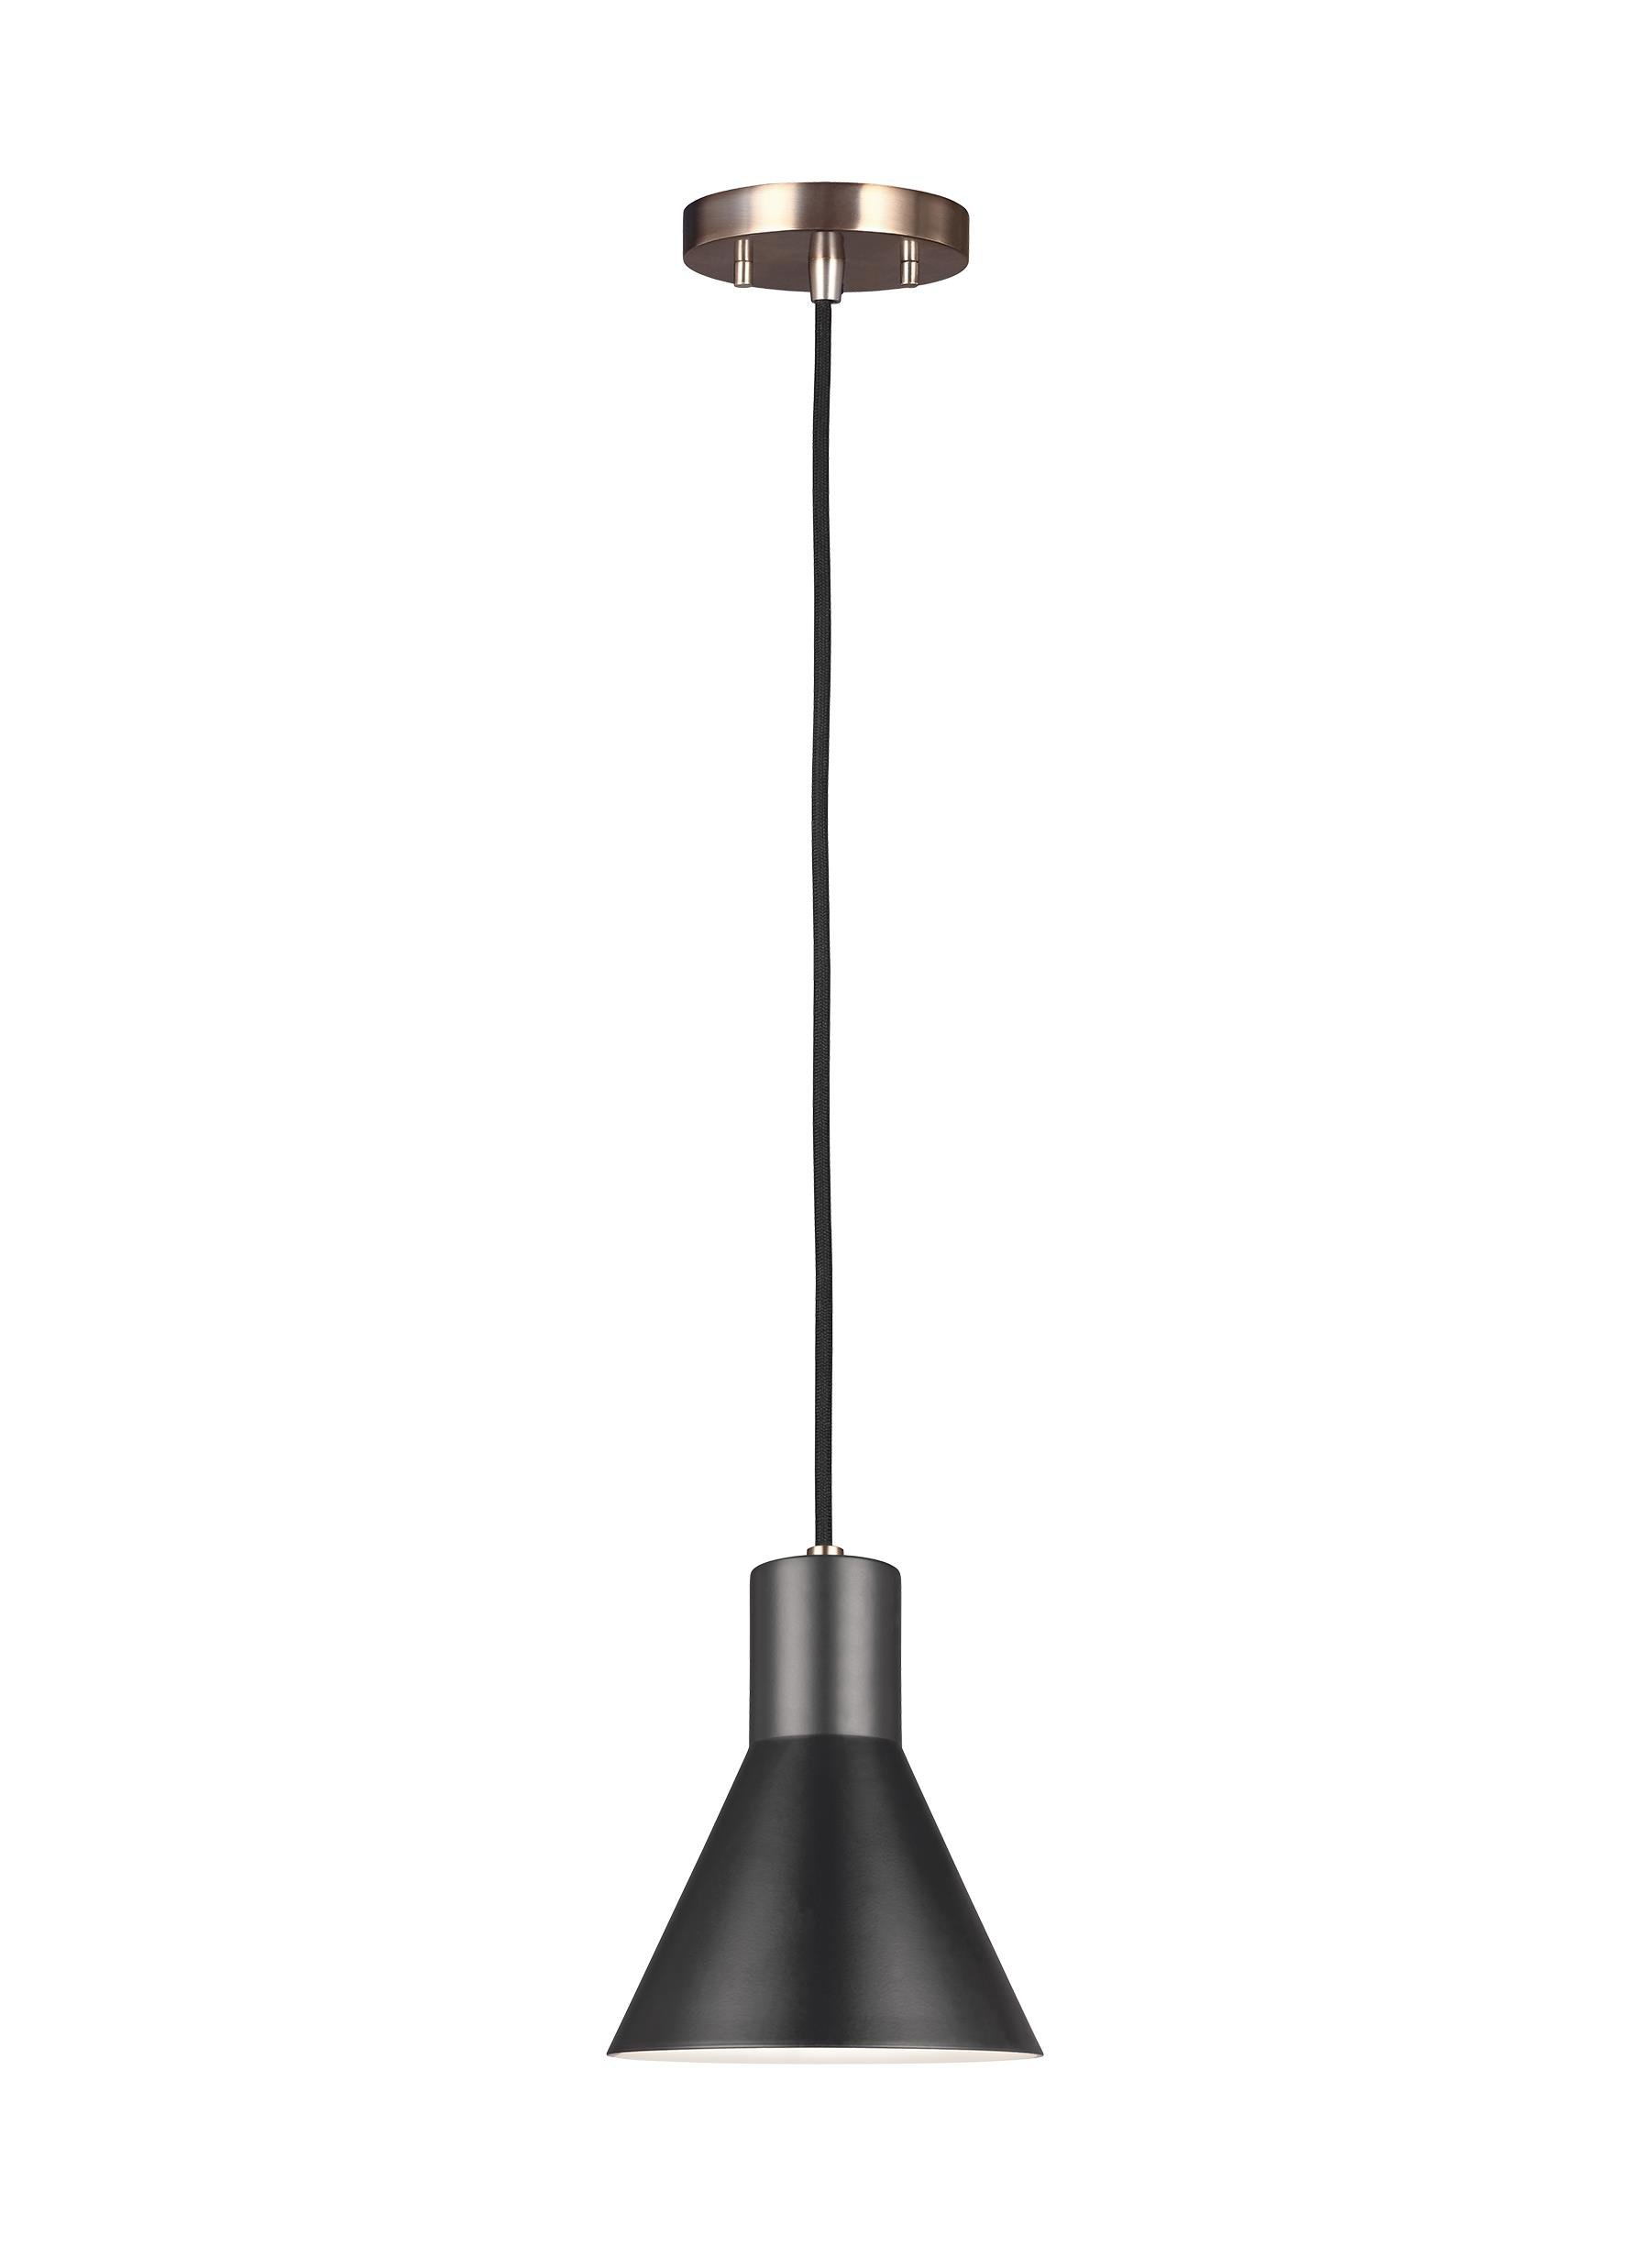 Alton 1-Light Single Cone Pendant in Conover 1-Light Dome Pendants (Image 2 of 30)